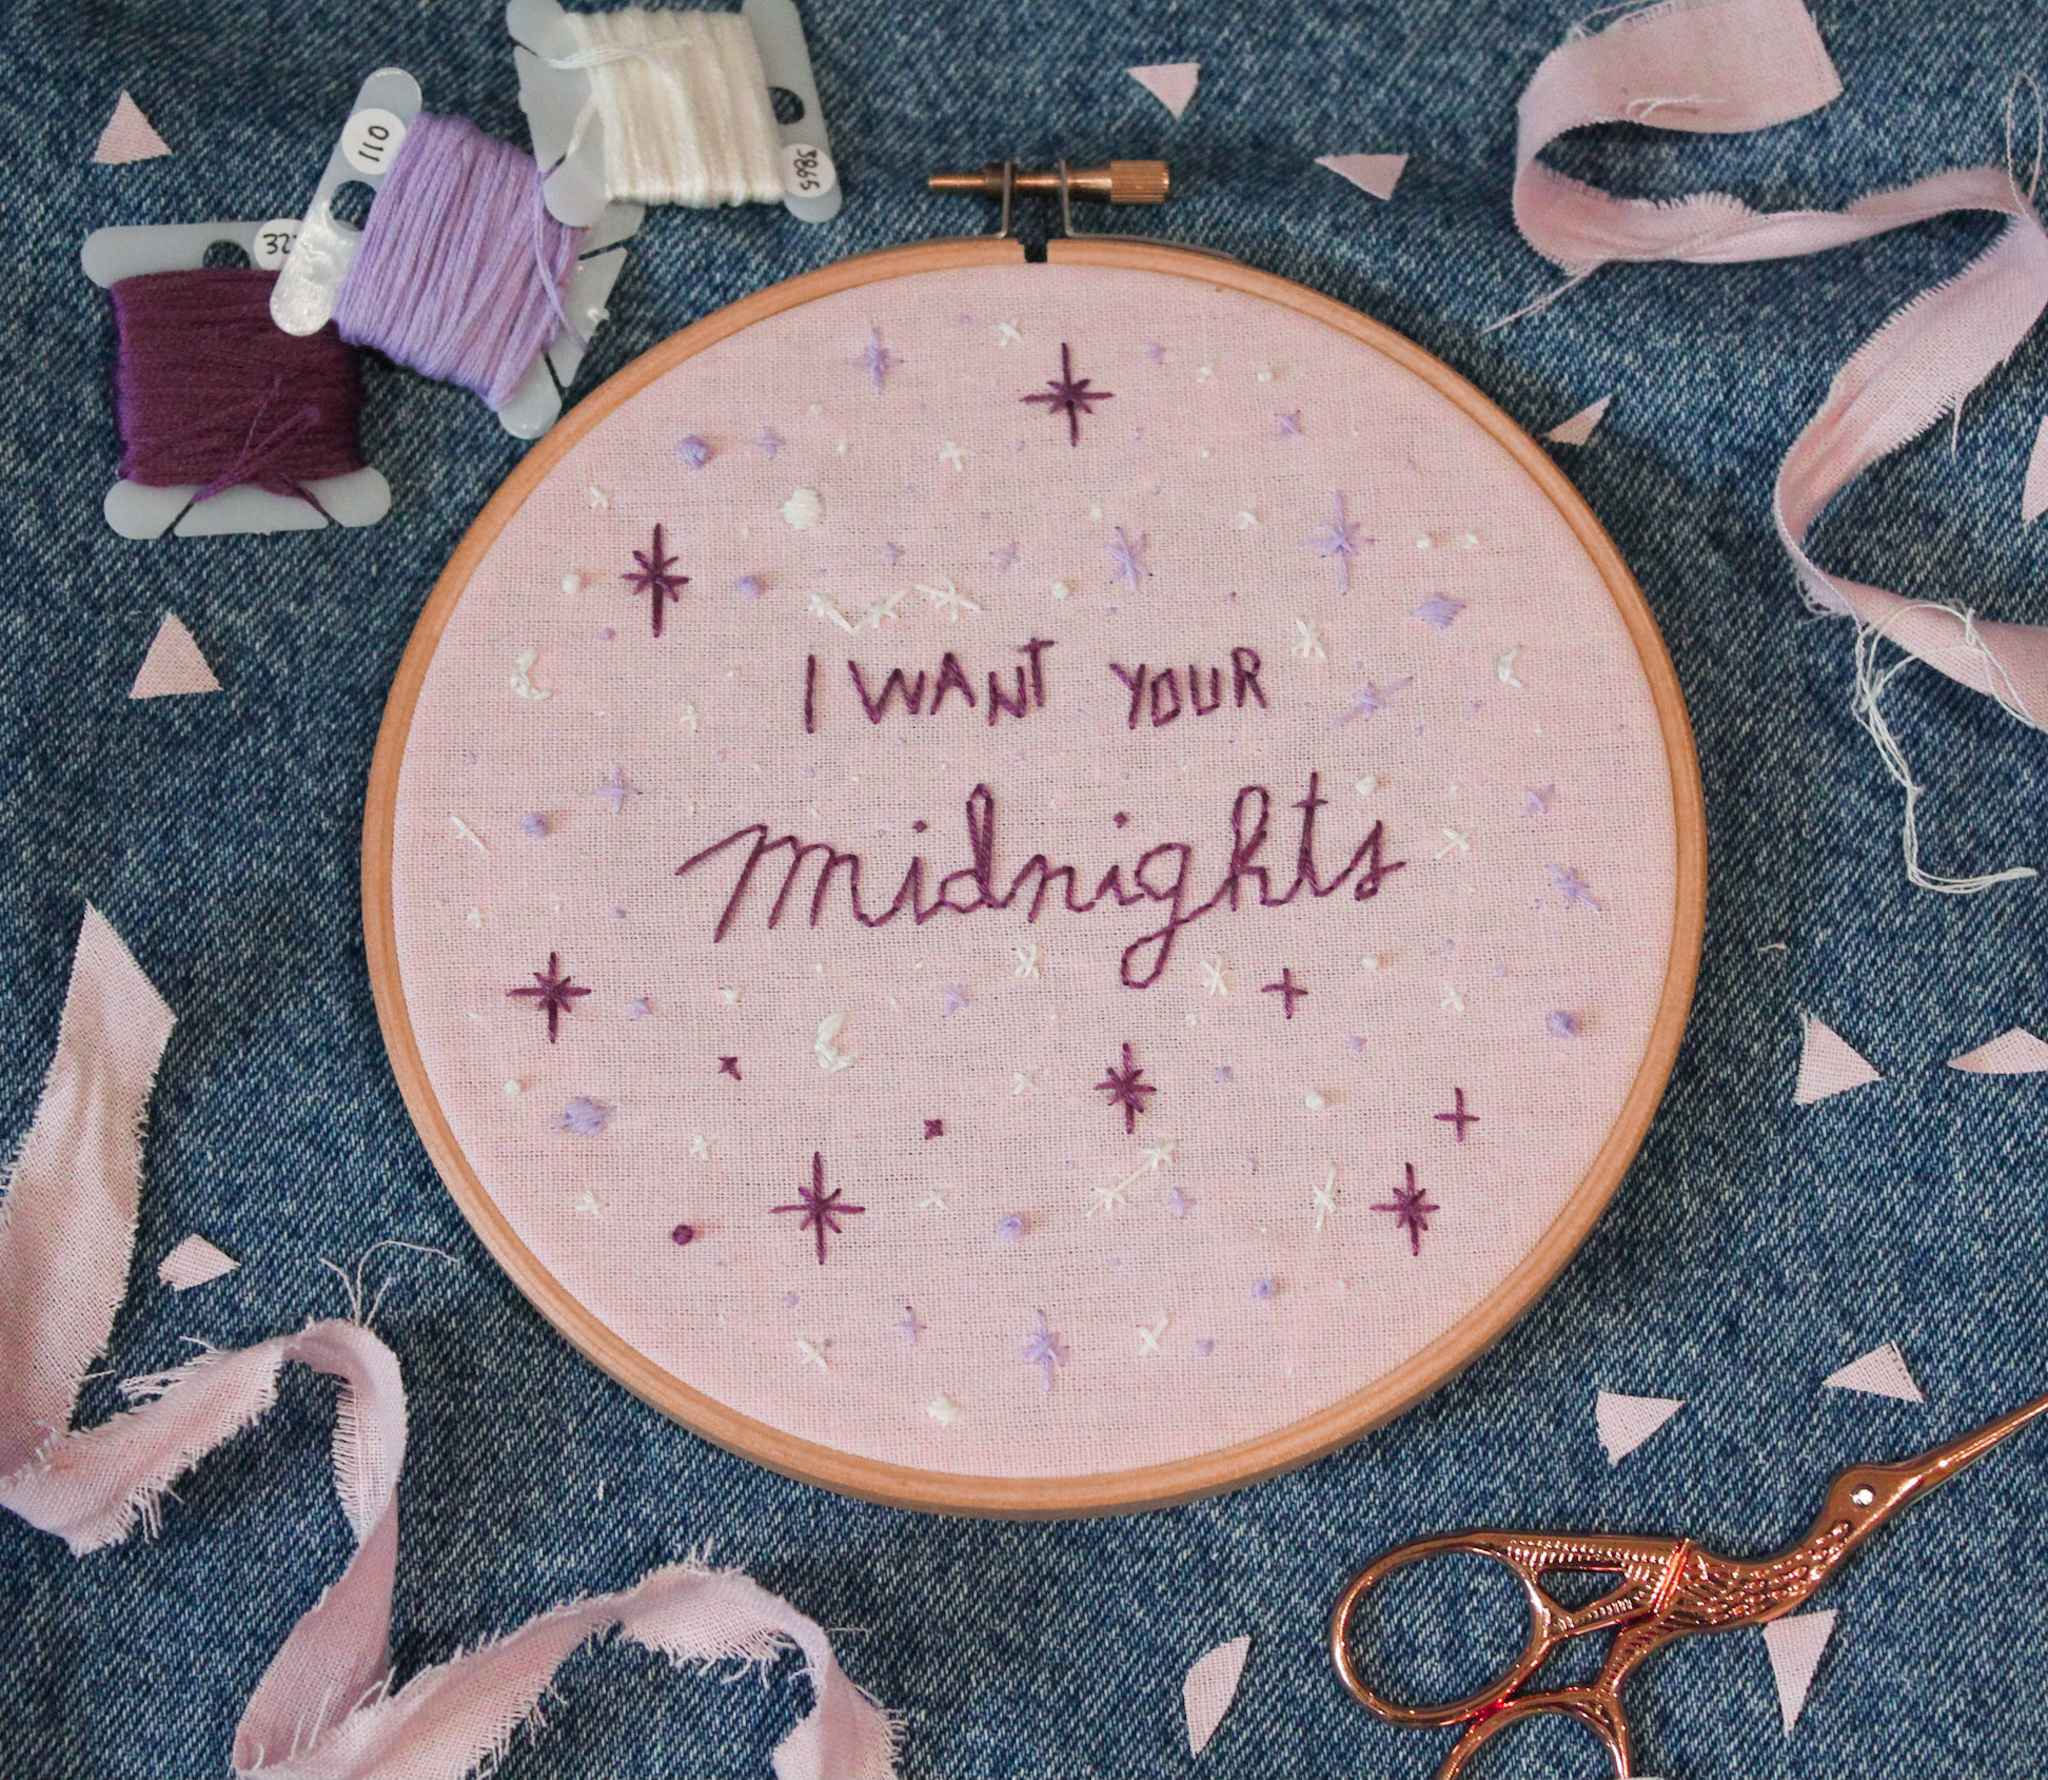 taylor swift embroidery